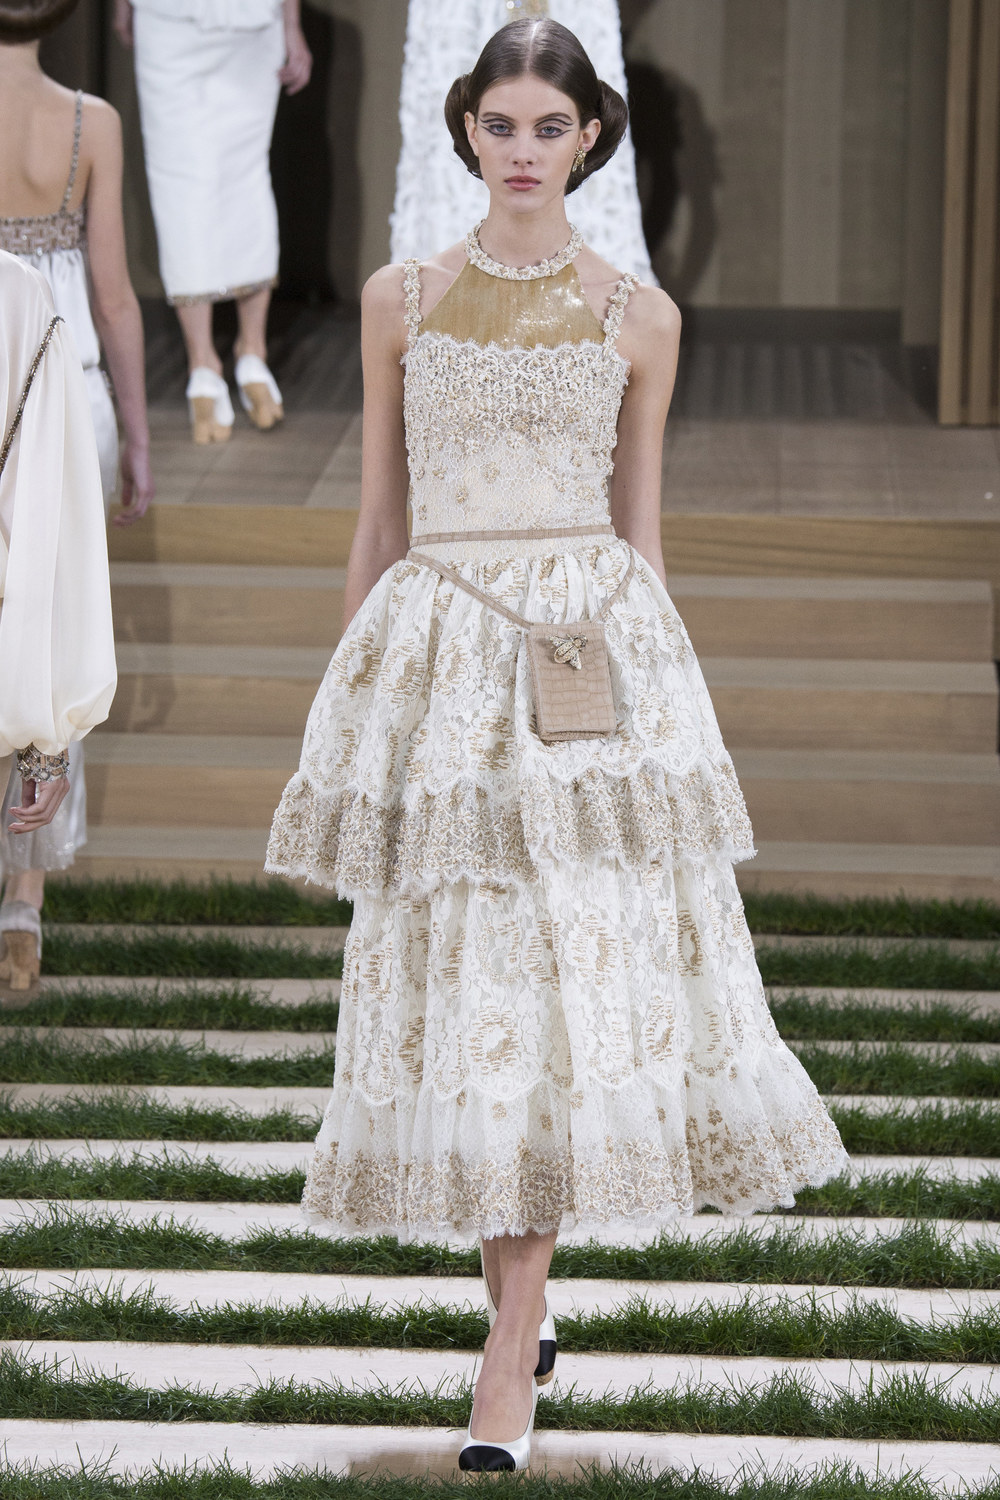 Chanel-Couture-Spring-2016-Paris-Fashion-Week-24.jpg